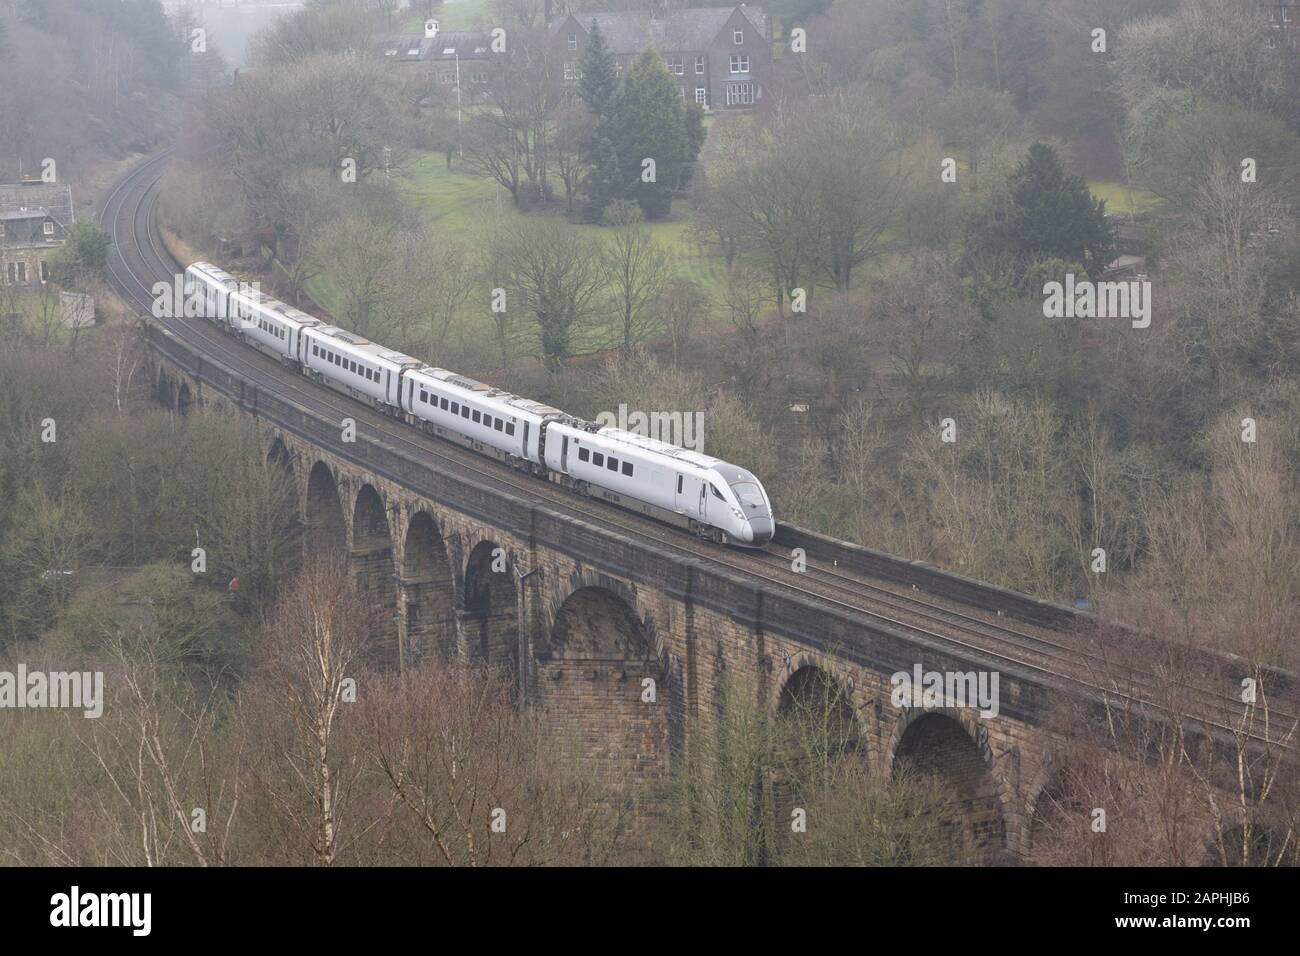 An unbranded TransPennie Express train crosses the viaduct at Brownhill, Saddleworth, Oldham heading for Manchester. Stock Photo